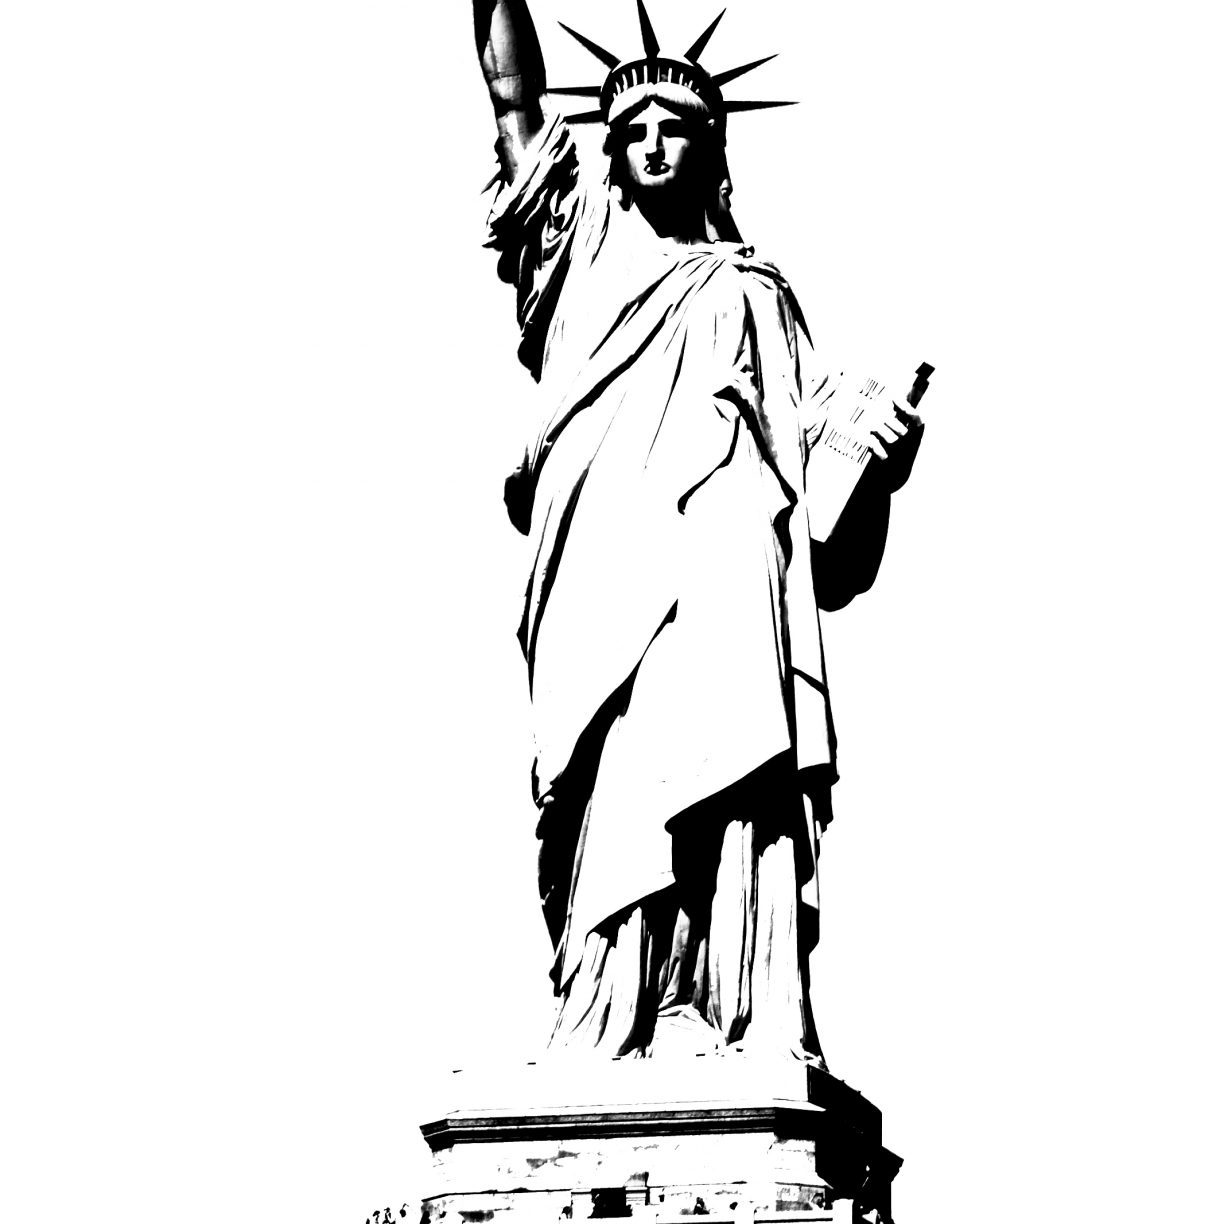 statue of liberty pencil drawing statue of liberty pencil sketch at paintingvalleycom statue pencil liberty of drawing